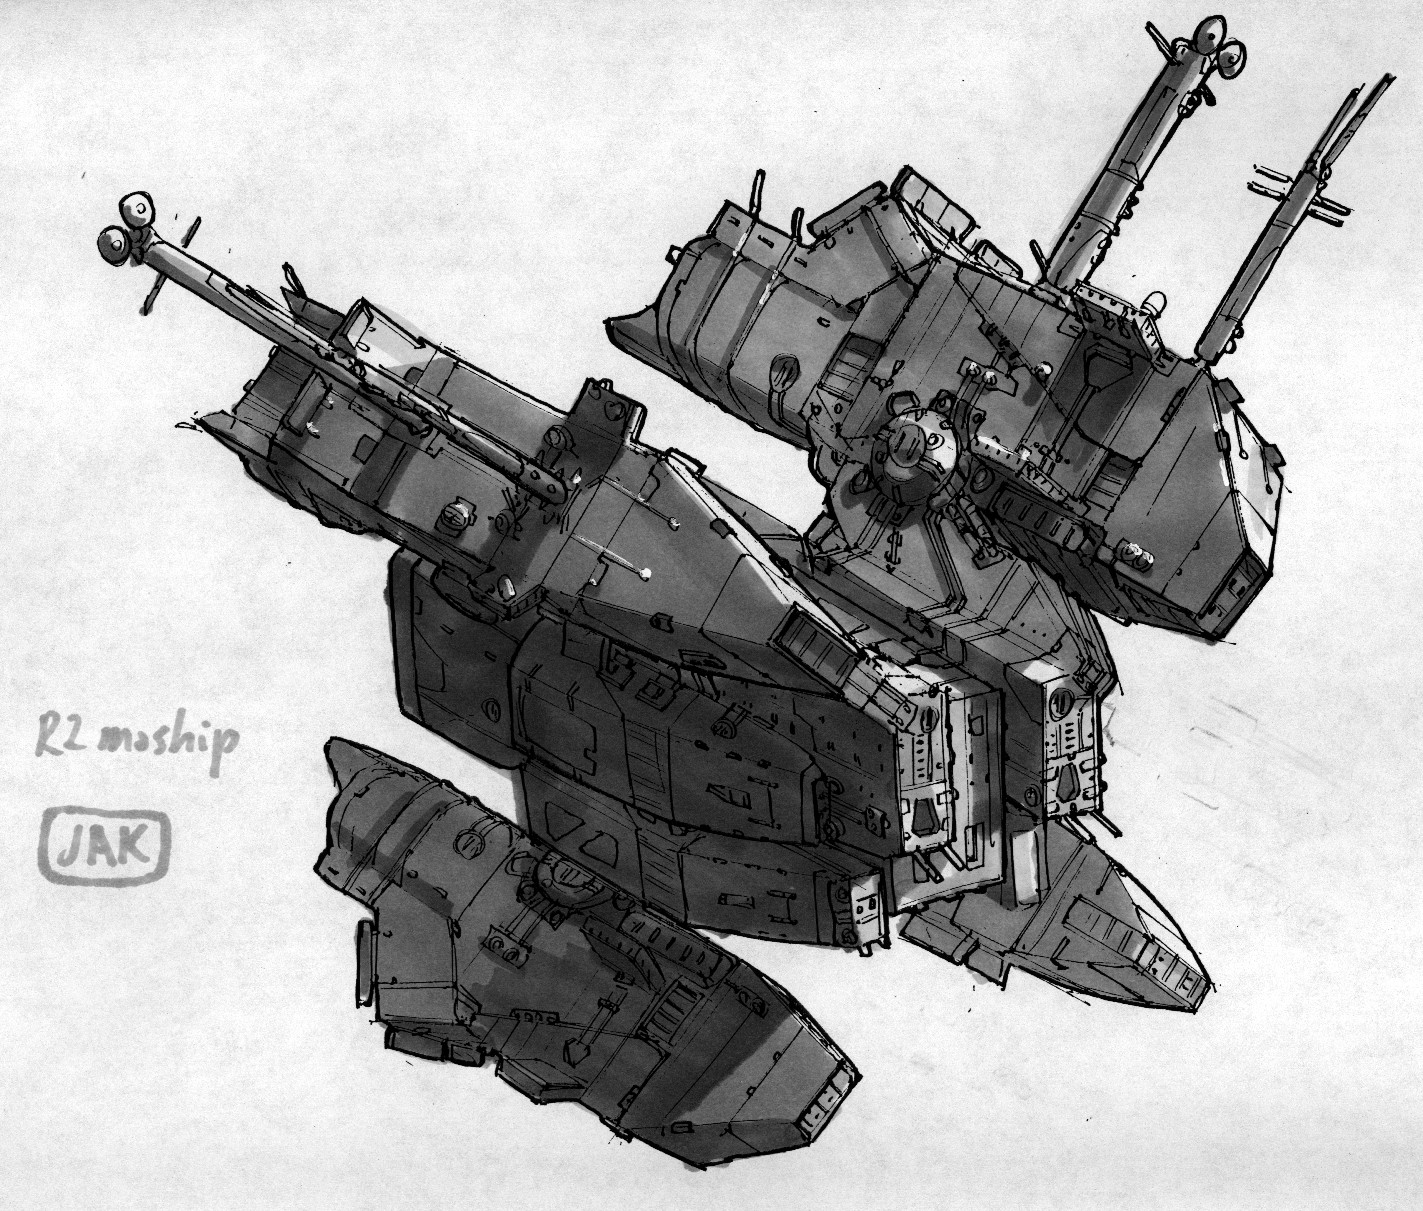 vignette3.wikia.nocookie.net/homeworld/images/b/b0/AK_R2_mo_ship.jpg